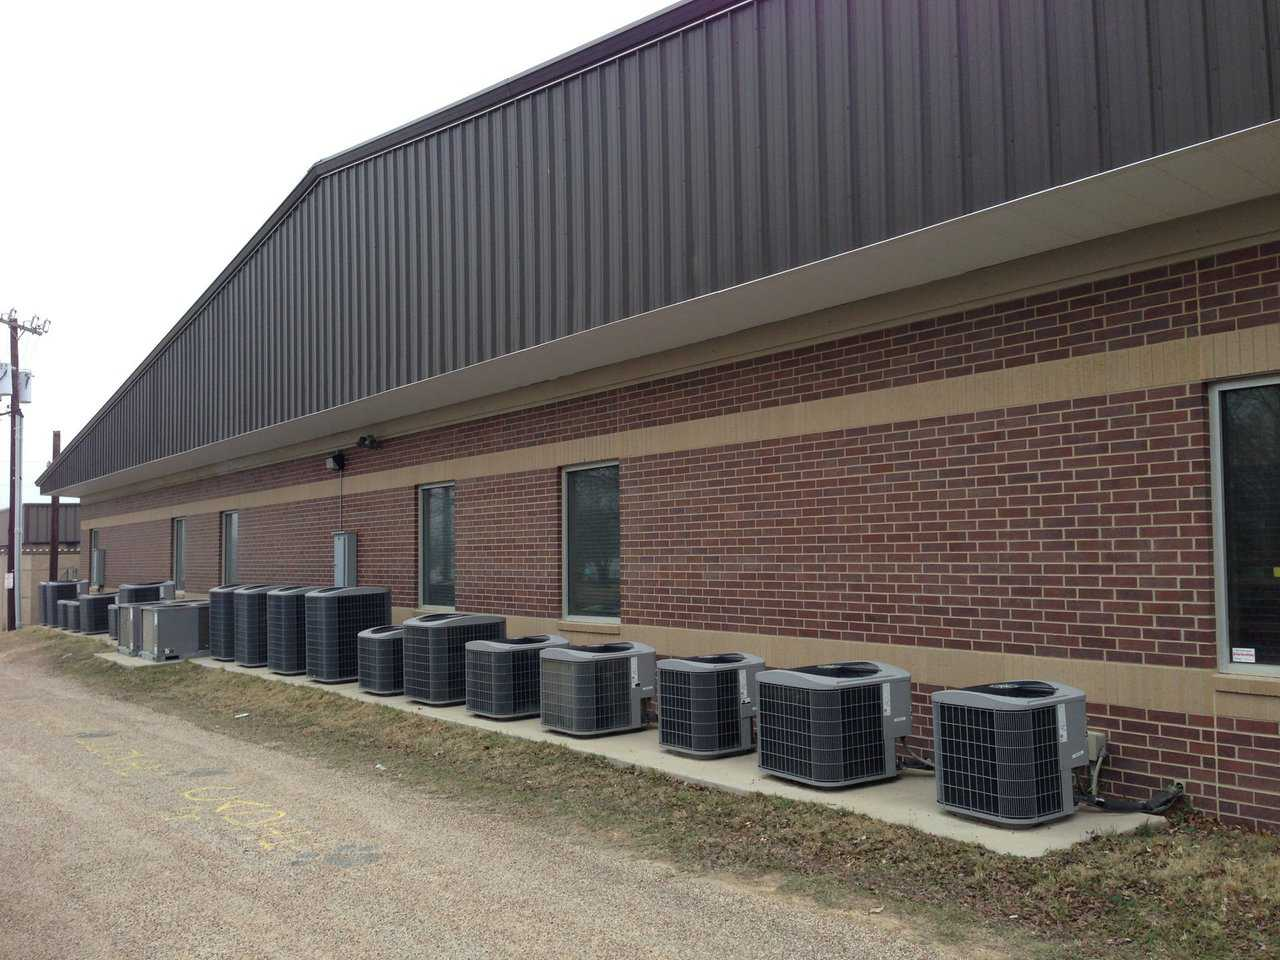 This Texas school has two conventional buildings, each with 20 air conditioning units along its back wall. That's 40 units for just one tax-supported school! What does it cost to install and run 40 ac units in hot, humid Texas? Also, consider that this is a school for less than 300 students.